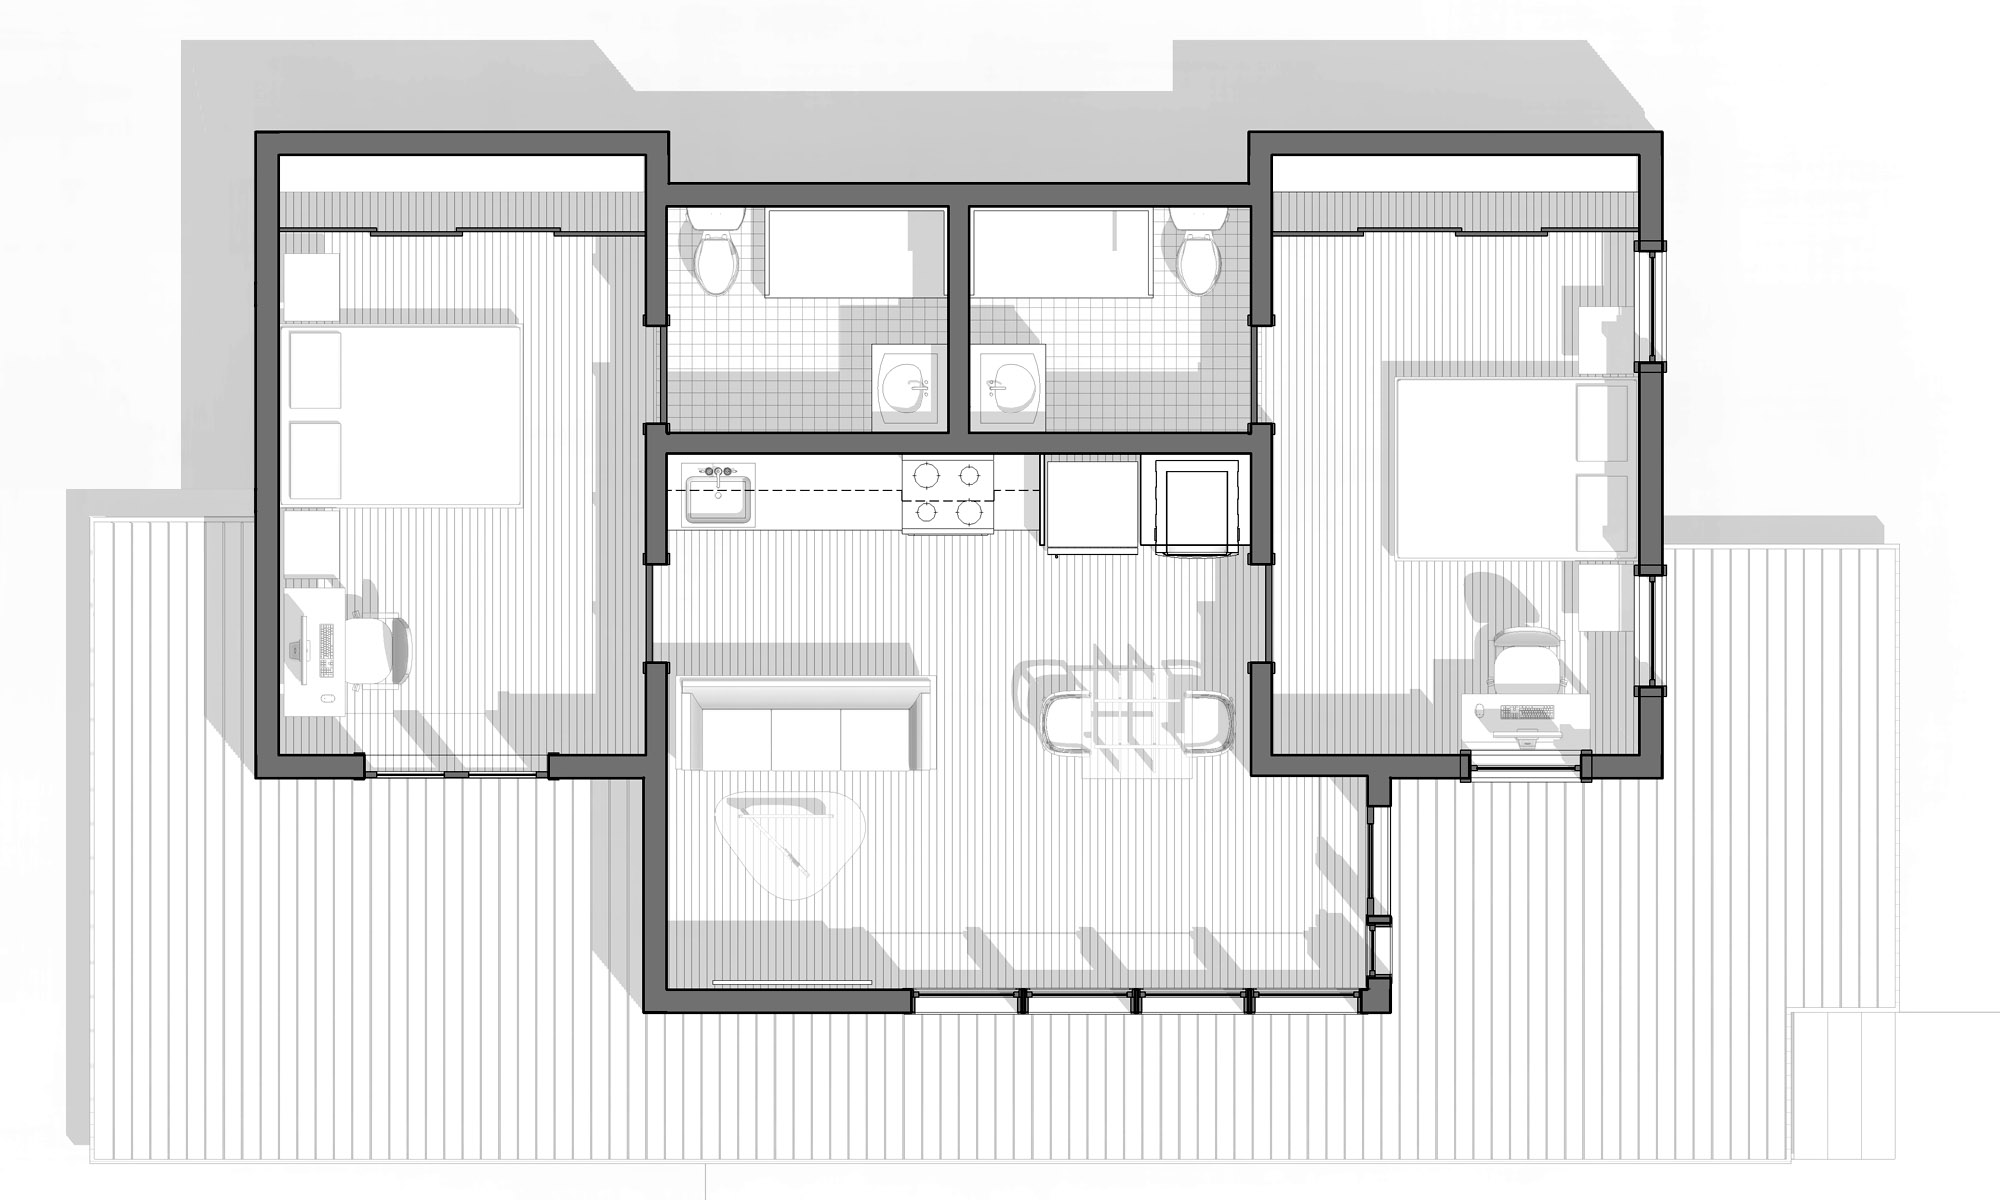 ADU Plan - A simple 2 bedroom, 2 bathroom design